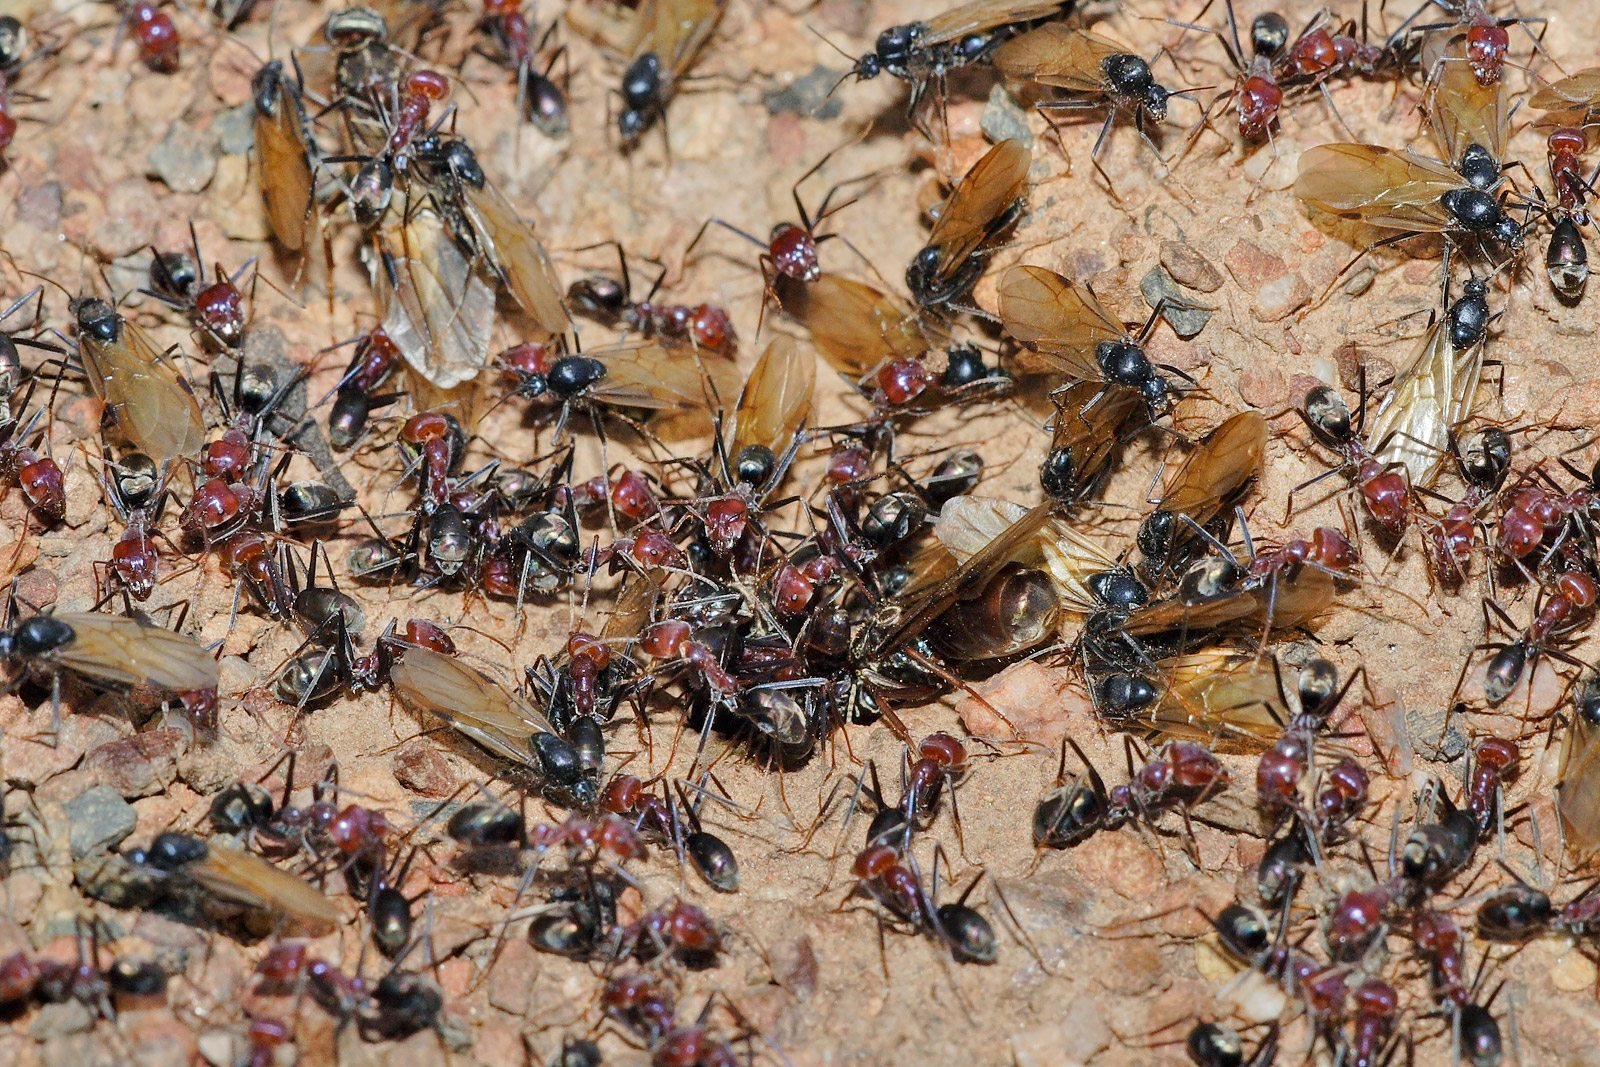 pest control Harbor Isle, pest control Harbor Hills, bed bugs, Rest Easy pest Control, Pest control services, Long Island NY, NYC, Rockland, Westchester, New York, Long Island, Pest Control, Exterminator, Brooklyn, Bronx, Staten Island, NY, exterminator, Nassau County, Suffolk County, bugs, bed bugs, organic pest control, organic exterminator, organic pest, ants,